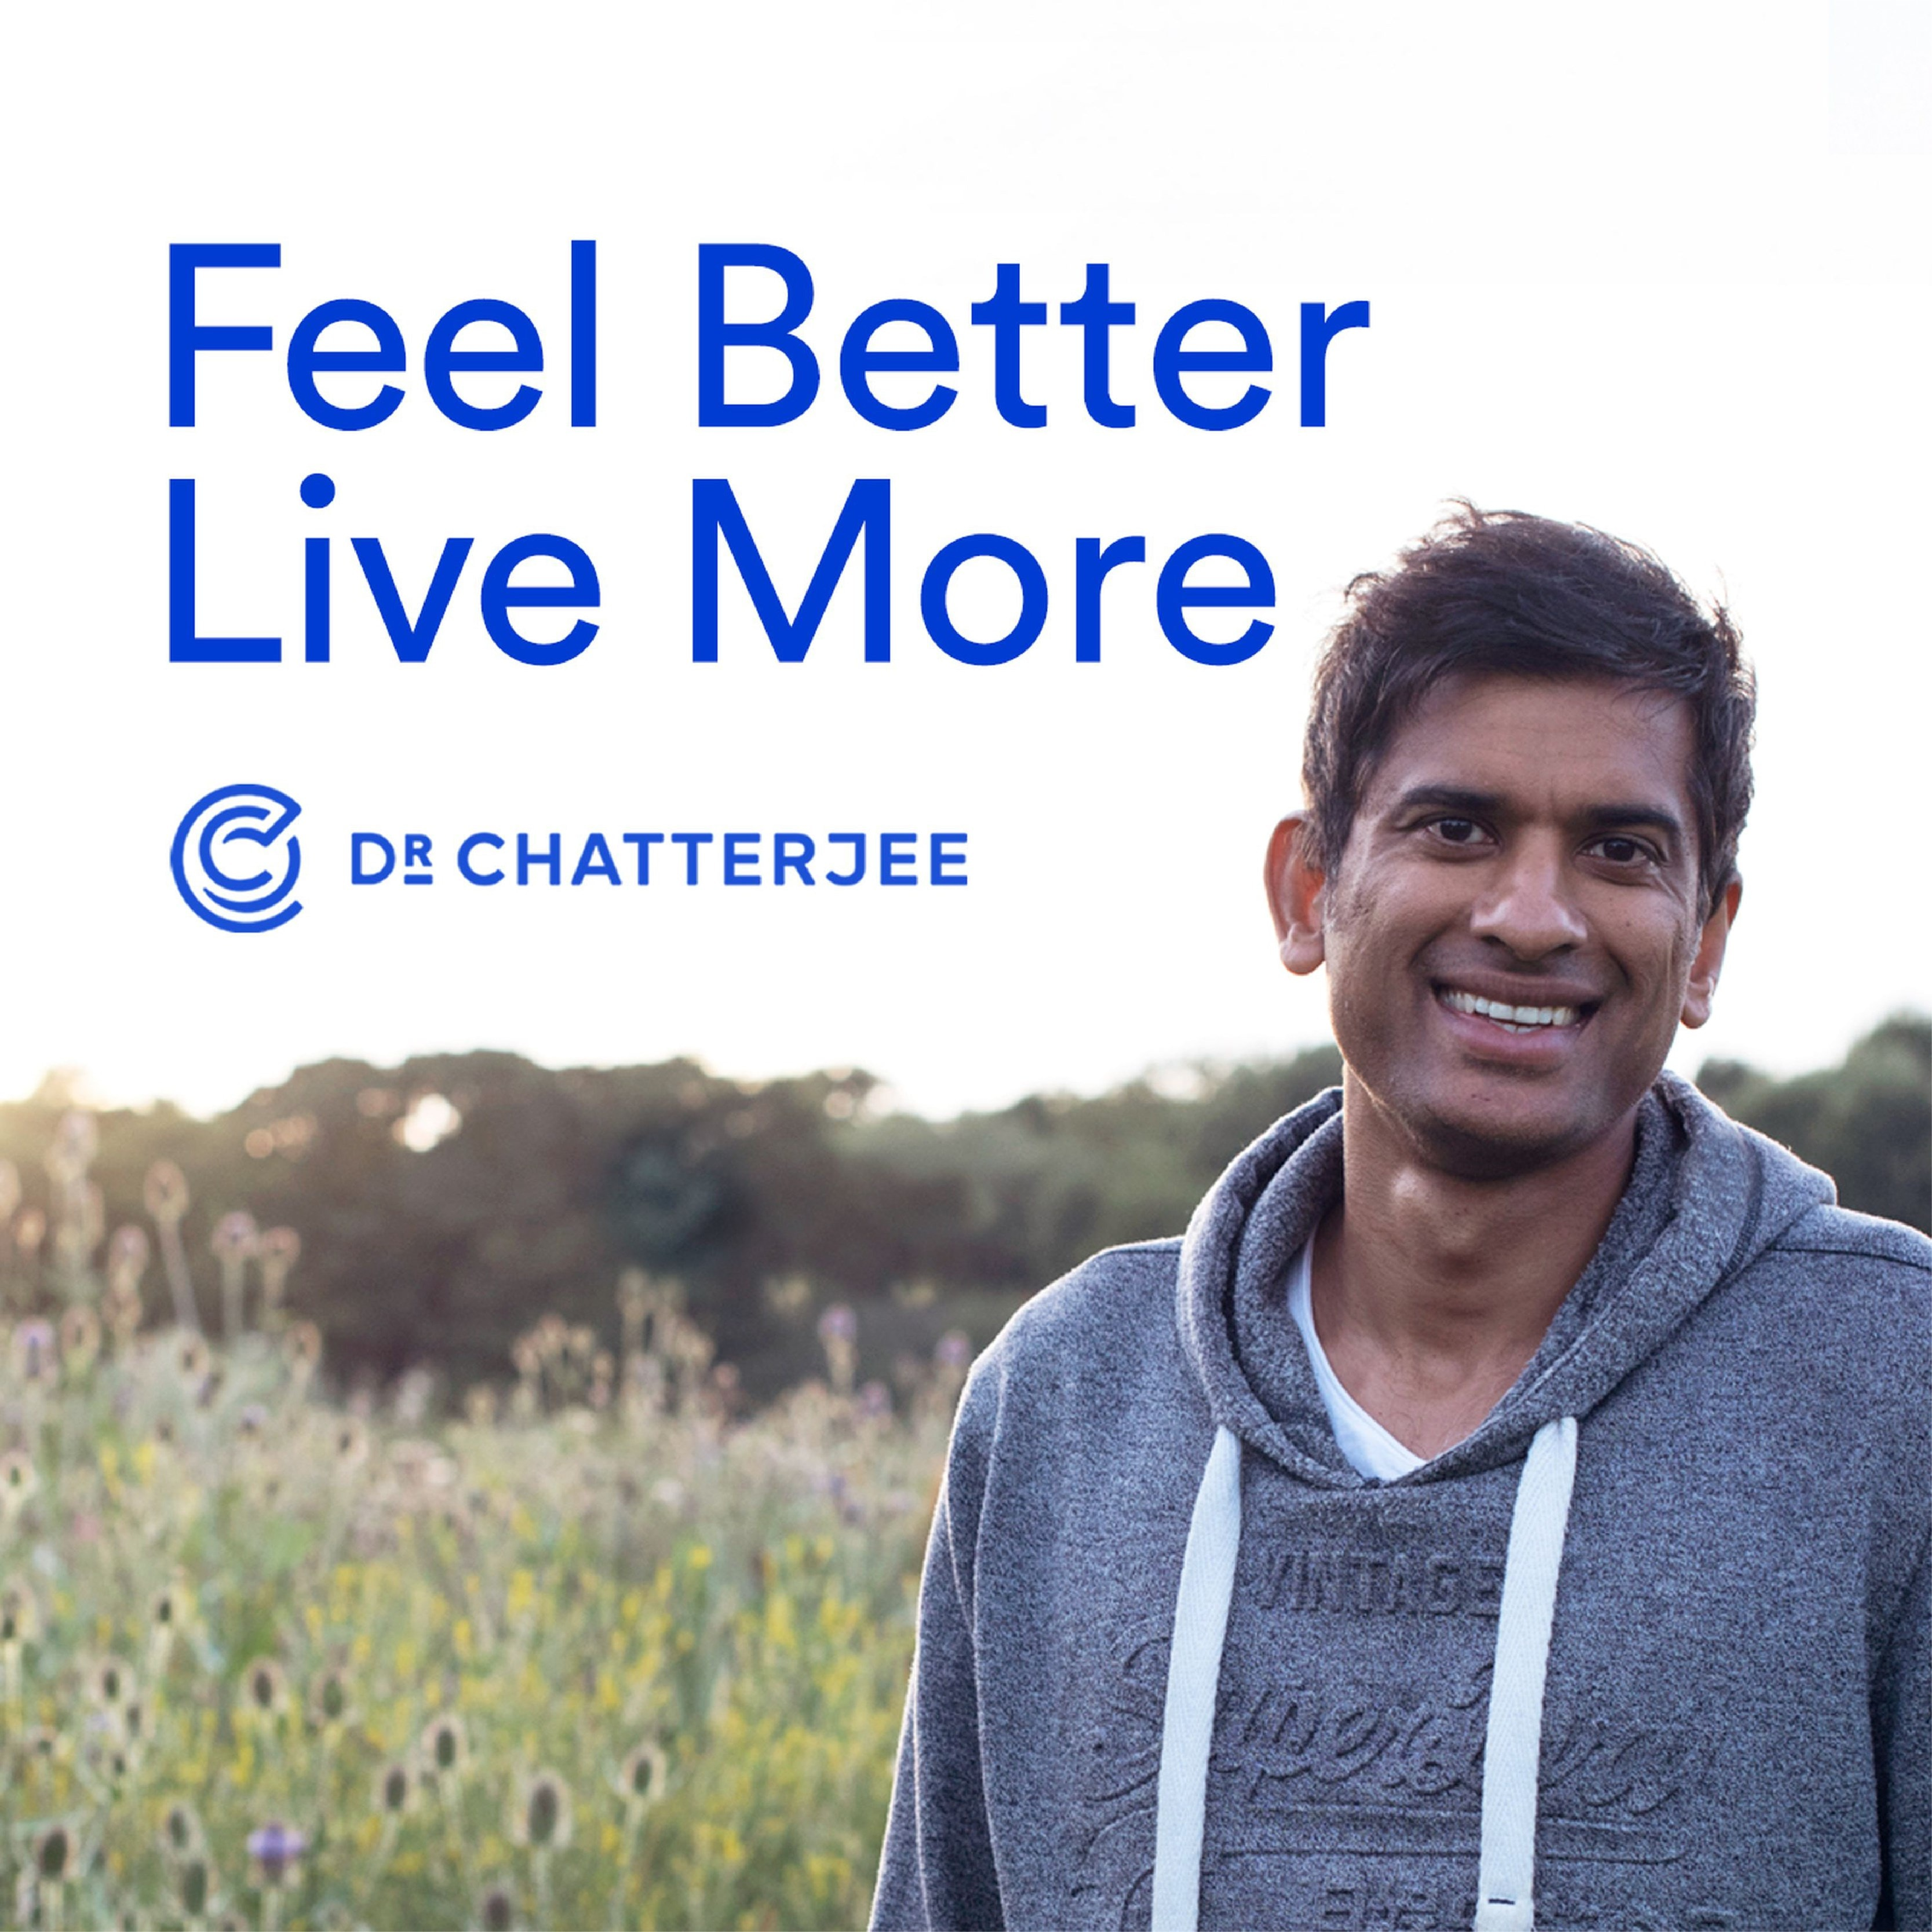 picture of dr chatterjee